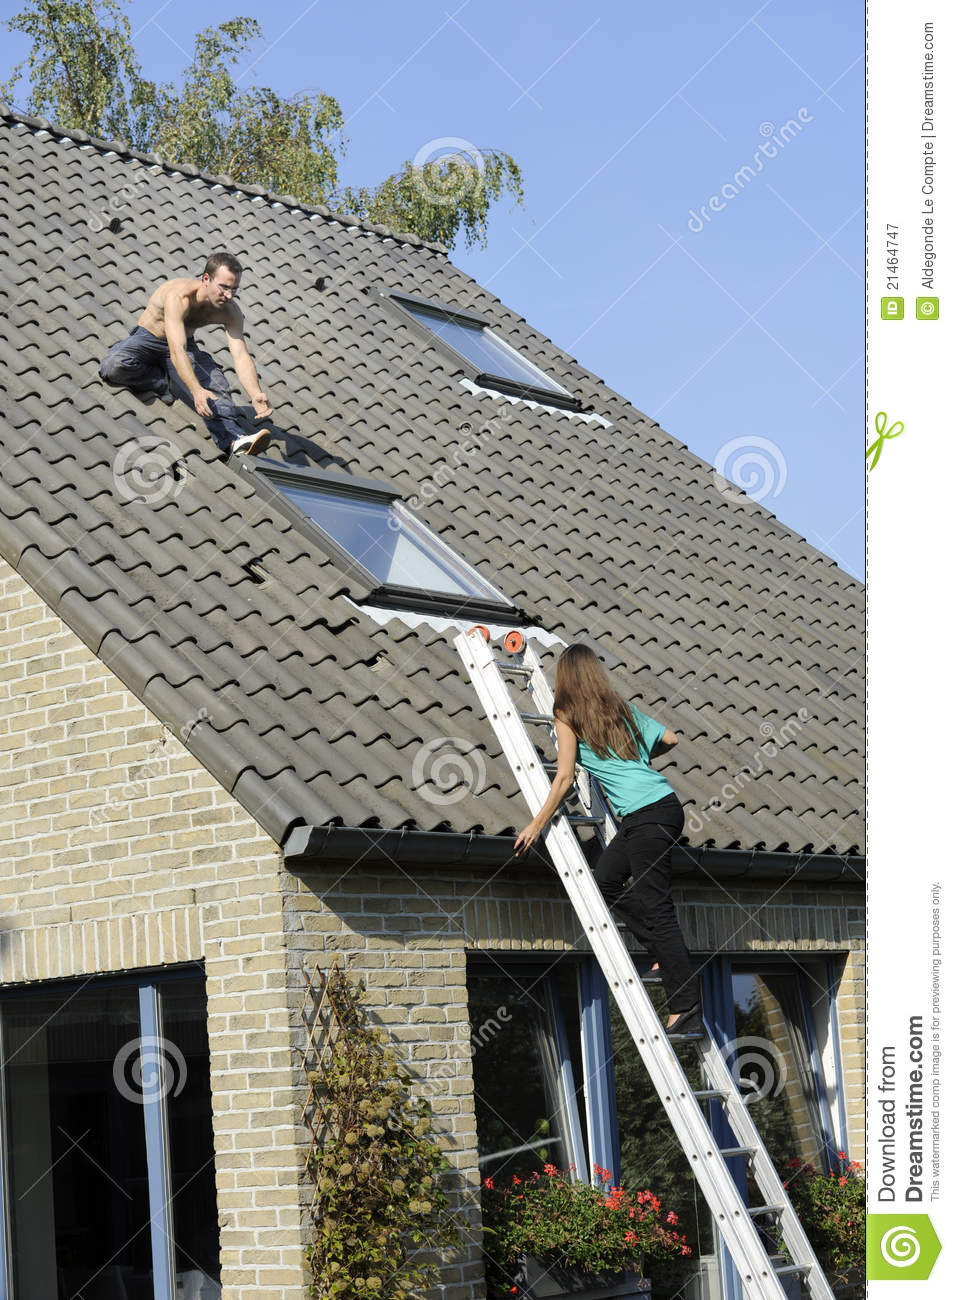 Woman On Ladder And Roofer Working On A Roof Royalty Free